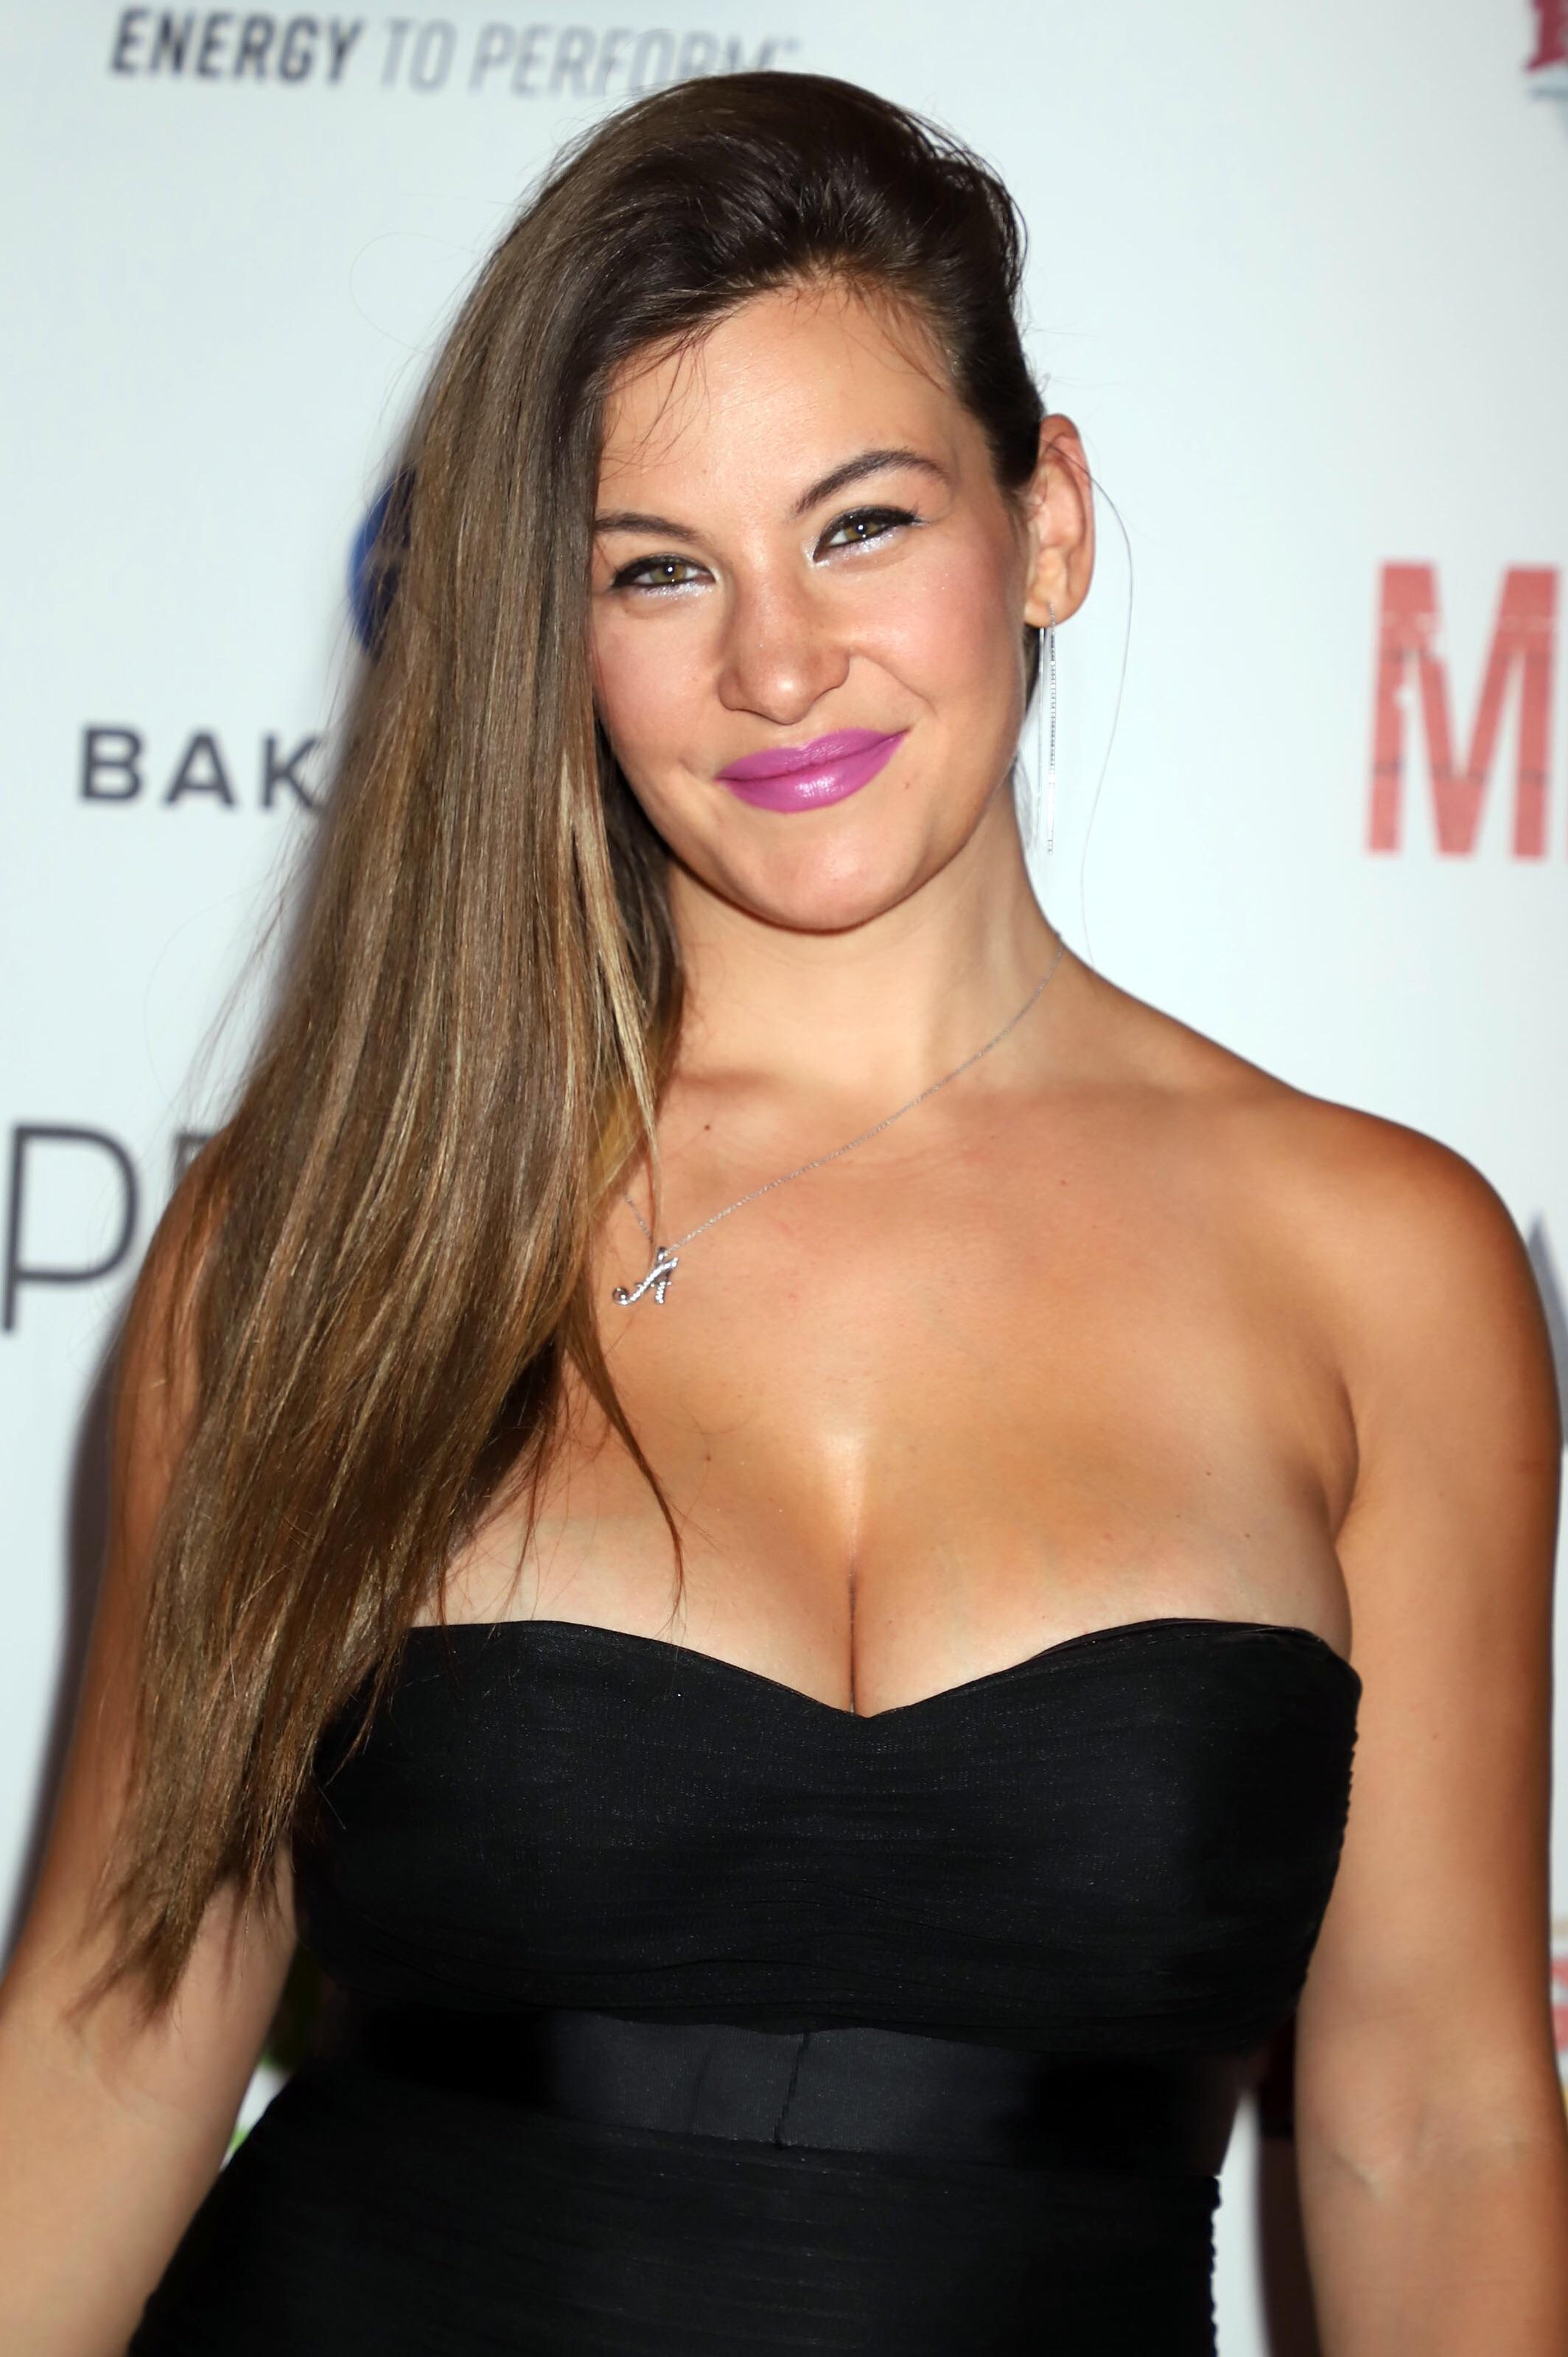 miesha tate hot cleavage